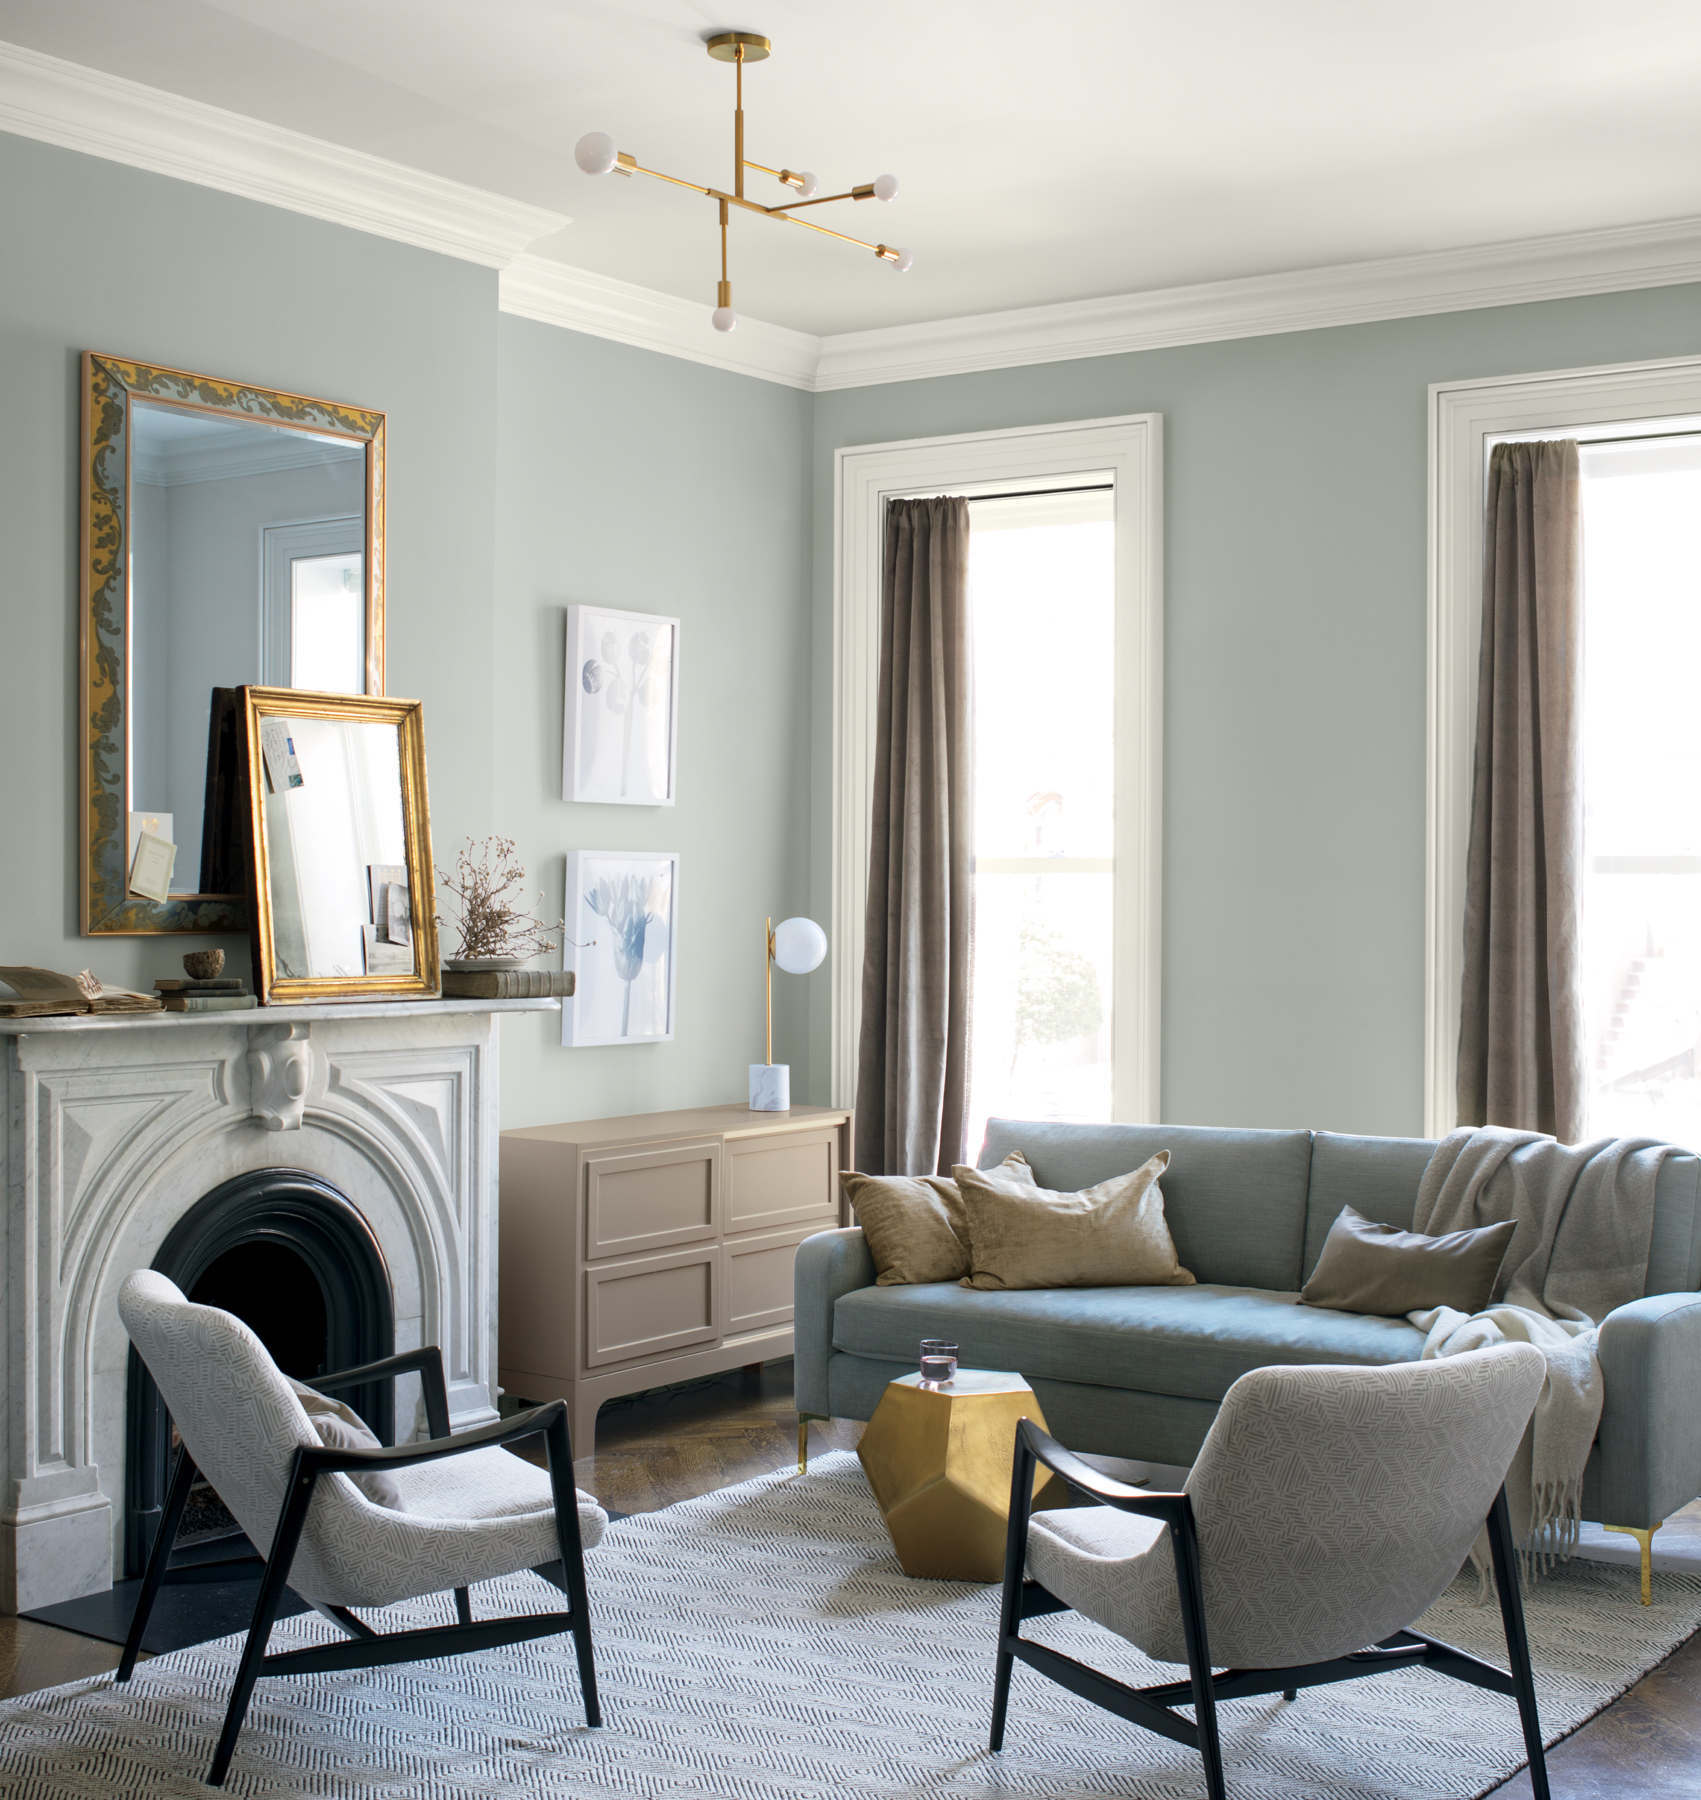 Home Design Color Ideas: 2019 Colors Of The Year